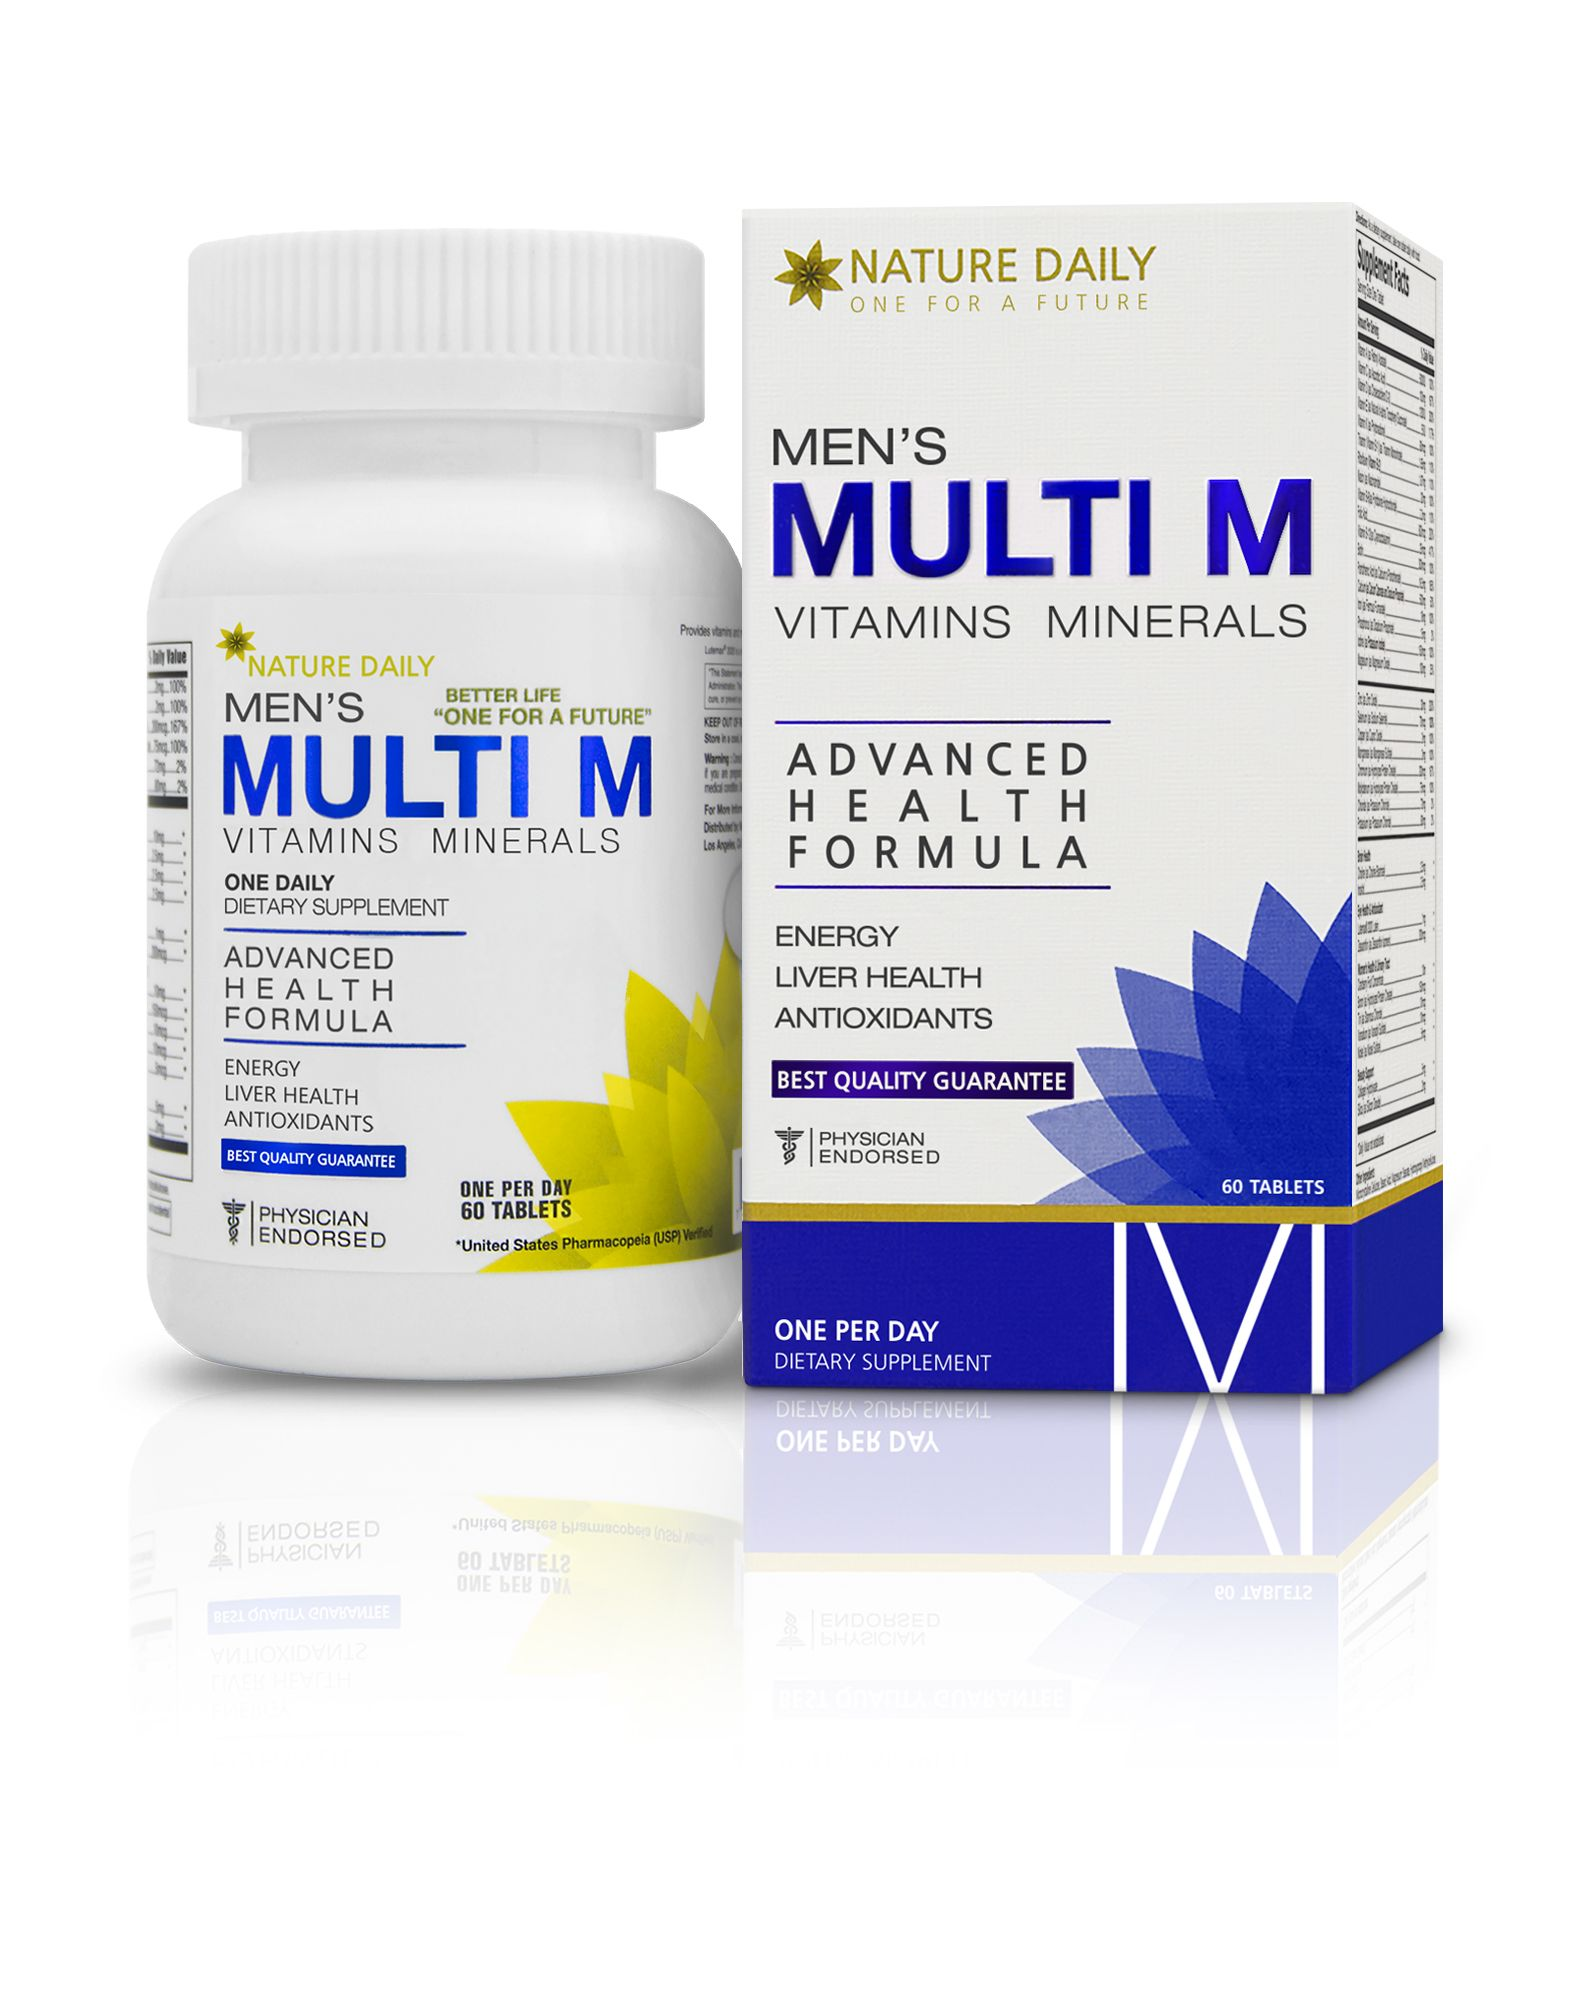 Nature Daily Men S Multi M Vitamins Minerals Advanced Health Formula One A Day 60 Tablets Whole Foo Whole Food Multivitamin Multivitamin Whole Food Recipes